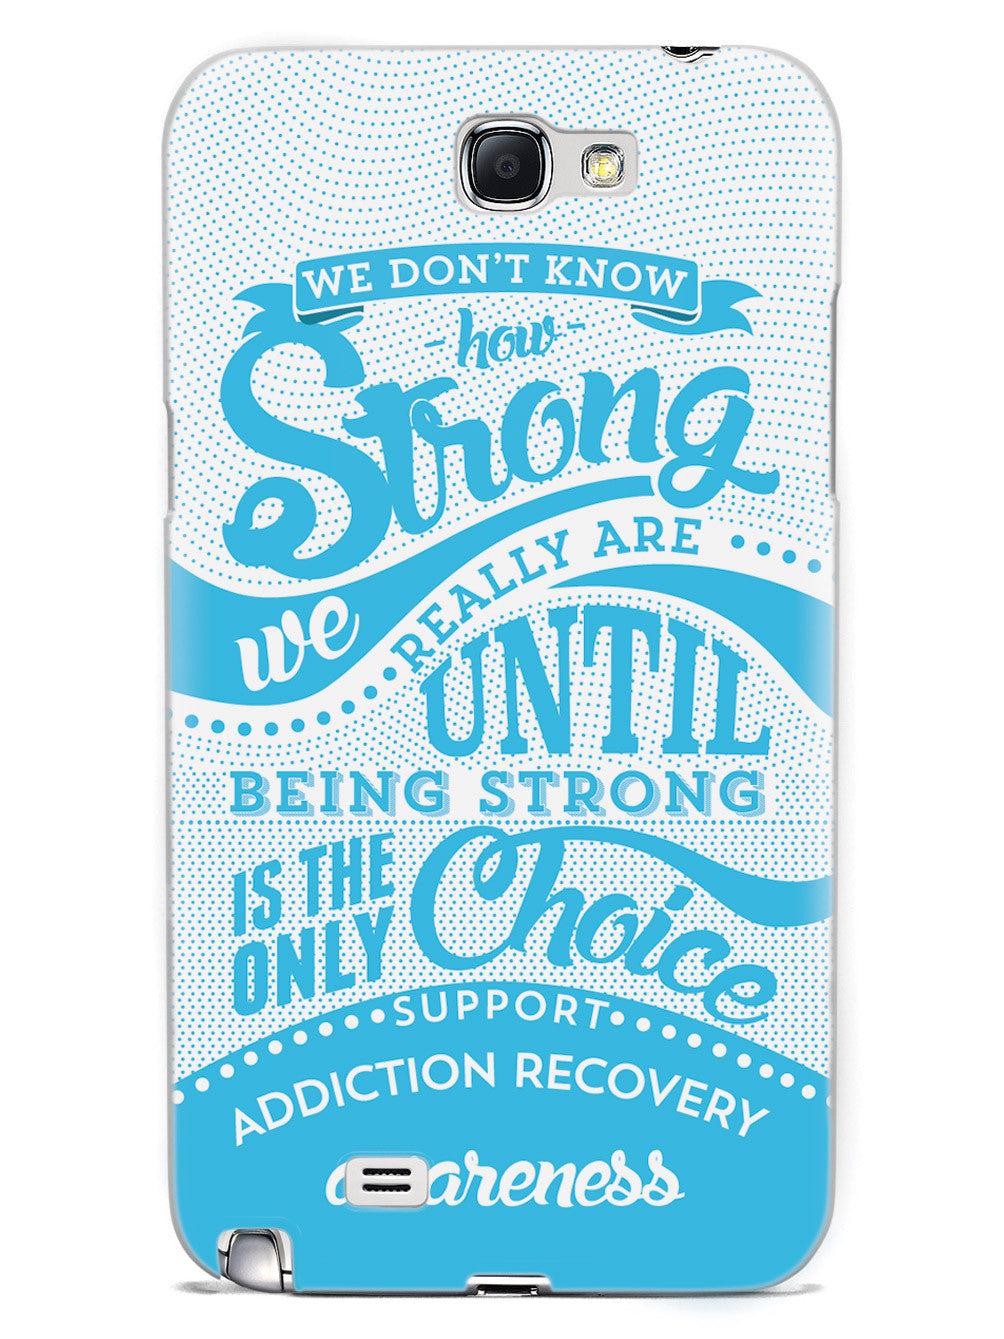 Addiction Recovery - How Strong Case